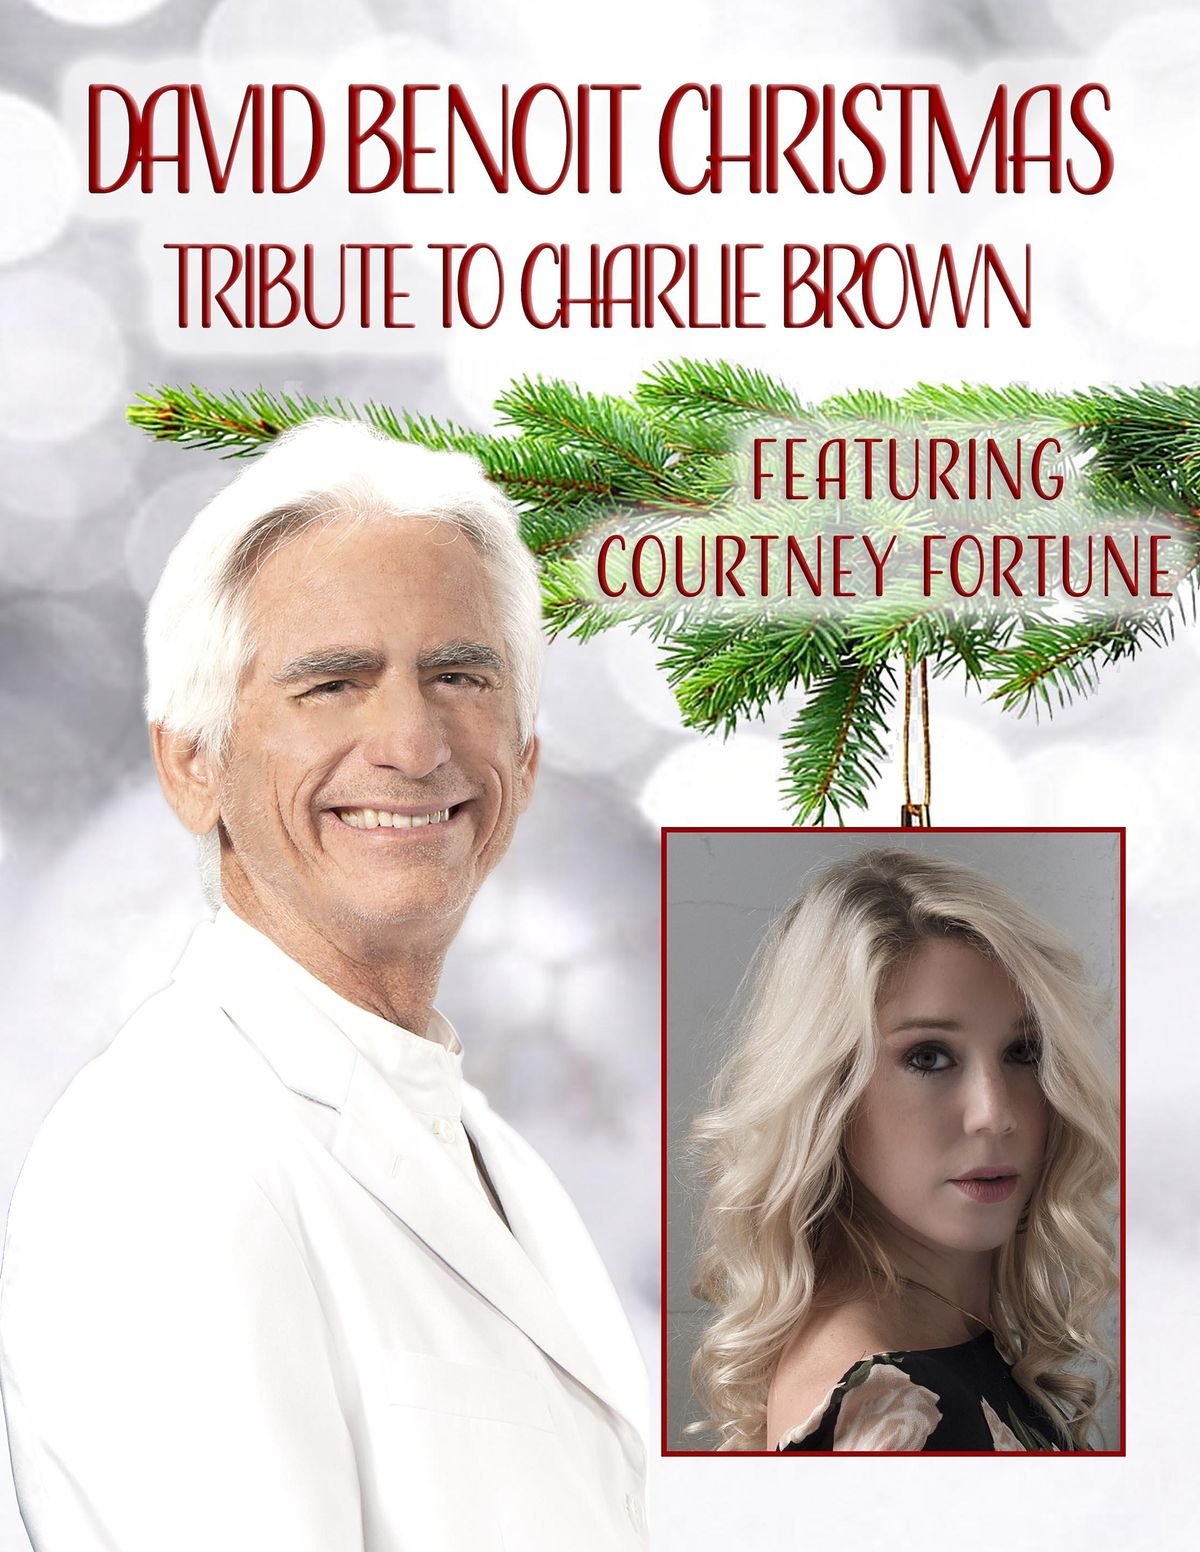 DAVID BENOIT CHRISTMAS TRIBUTE TO CHARLIE BROWN, 16 December | Event in Oakland | AllEvents.in